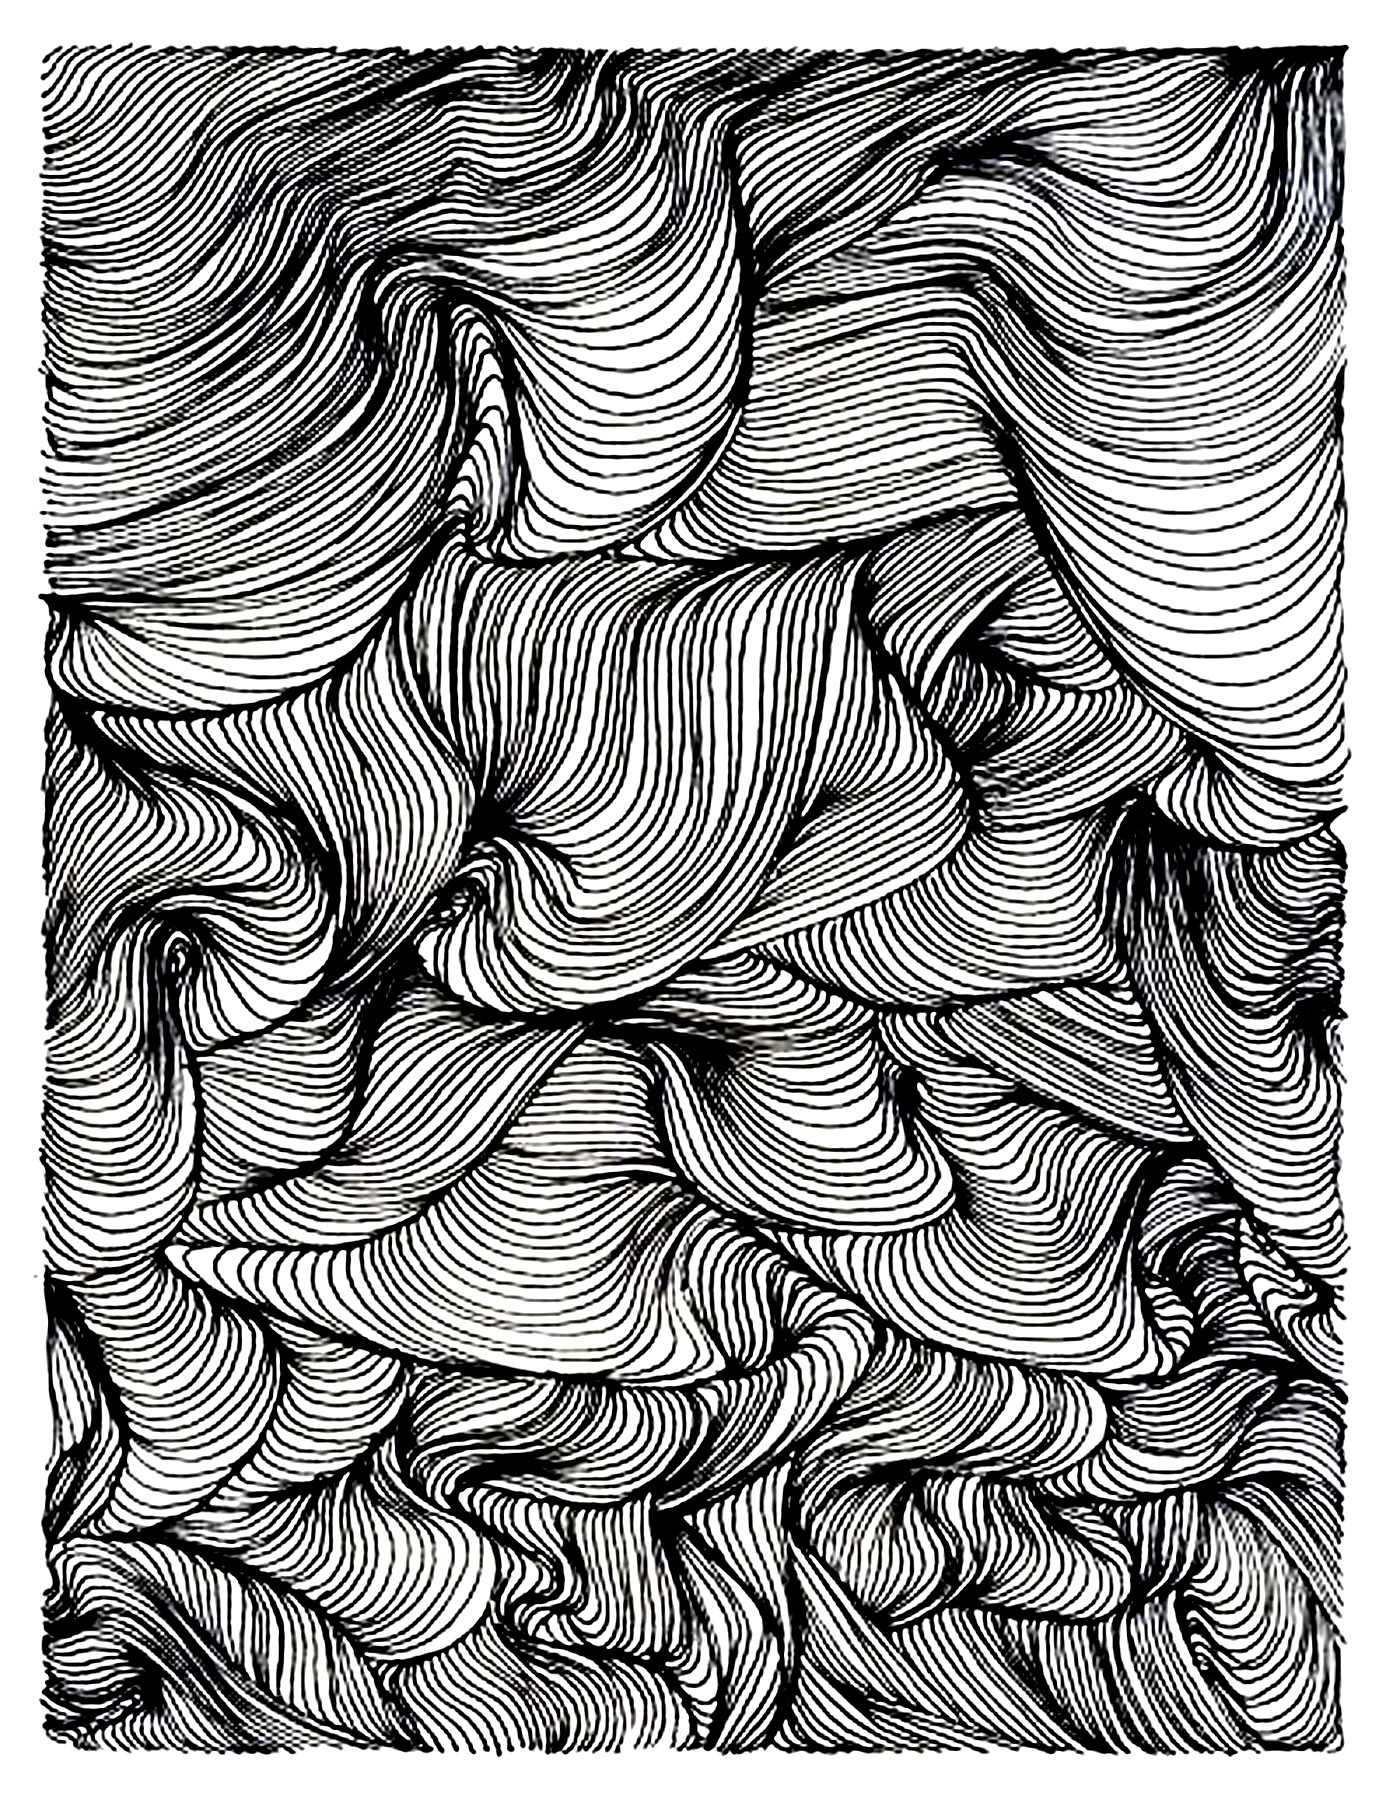 Relax vortex Anti stress Adult Coloring Pages Page 2